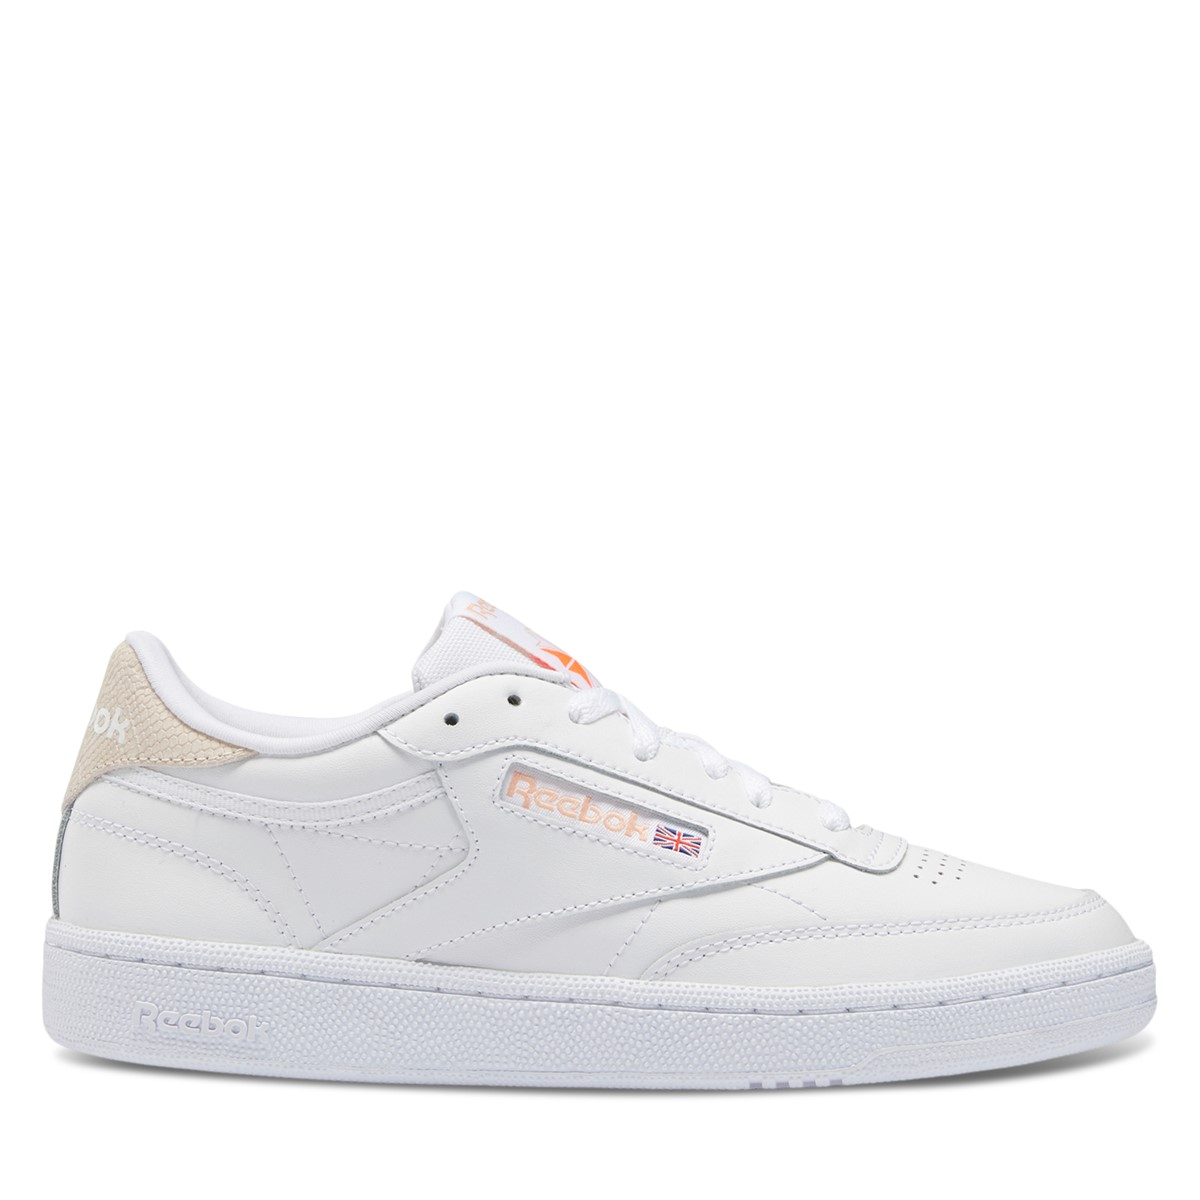 Women's Club C 85 Sneakers in White/Pink